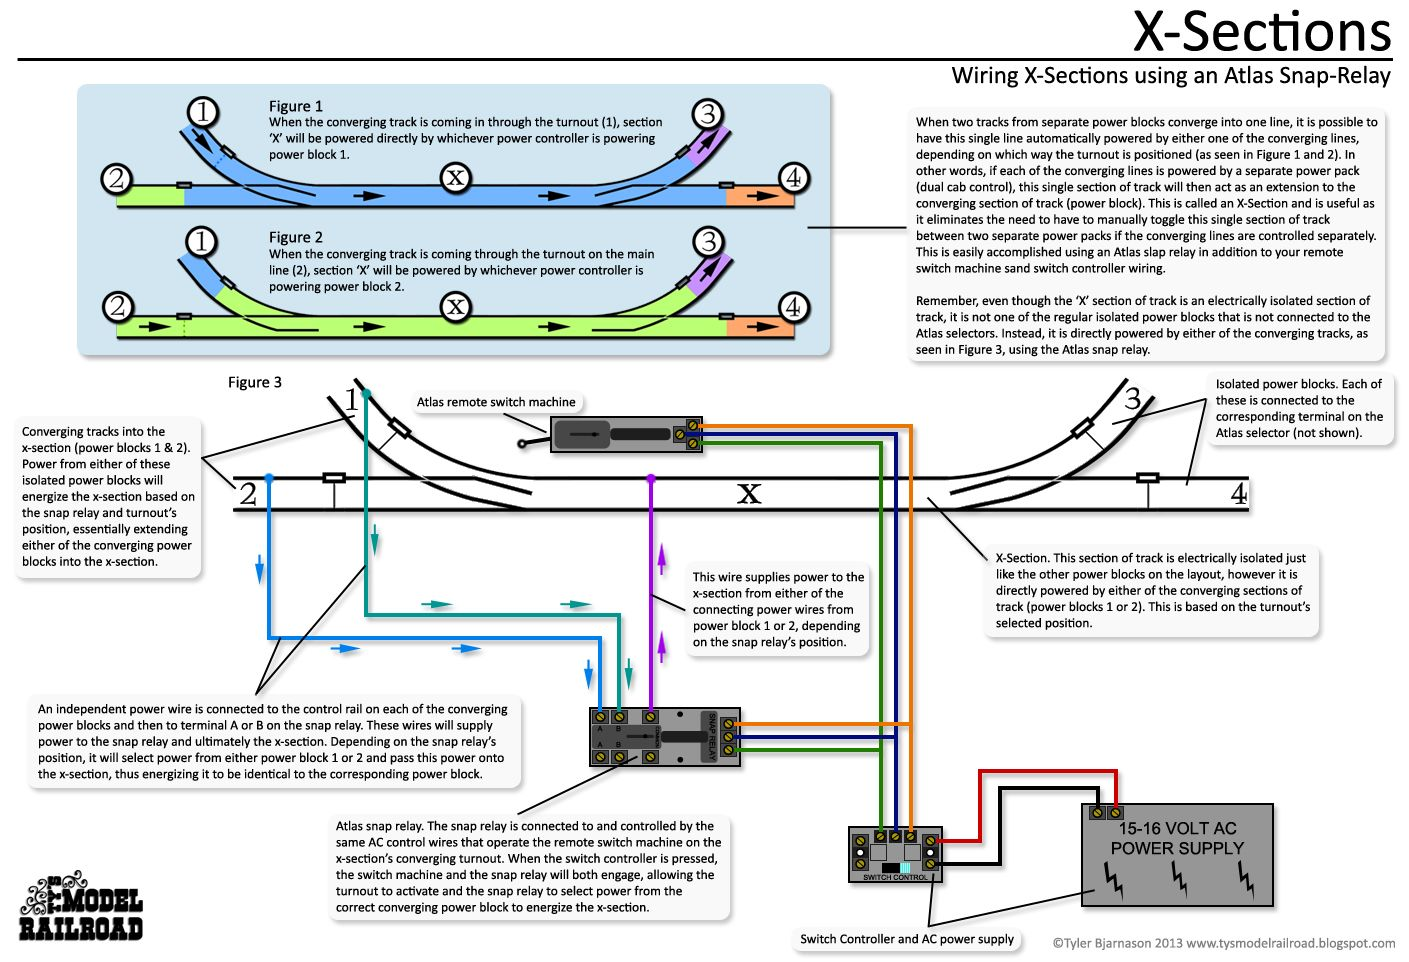 hight resolution of how to wire an x section using an atlas snap relay and existing remote switch machine wiring